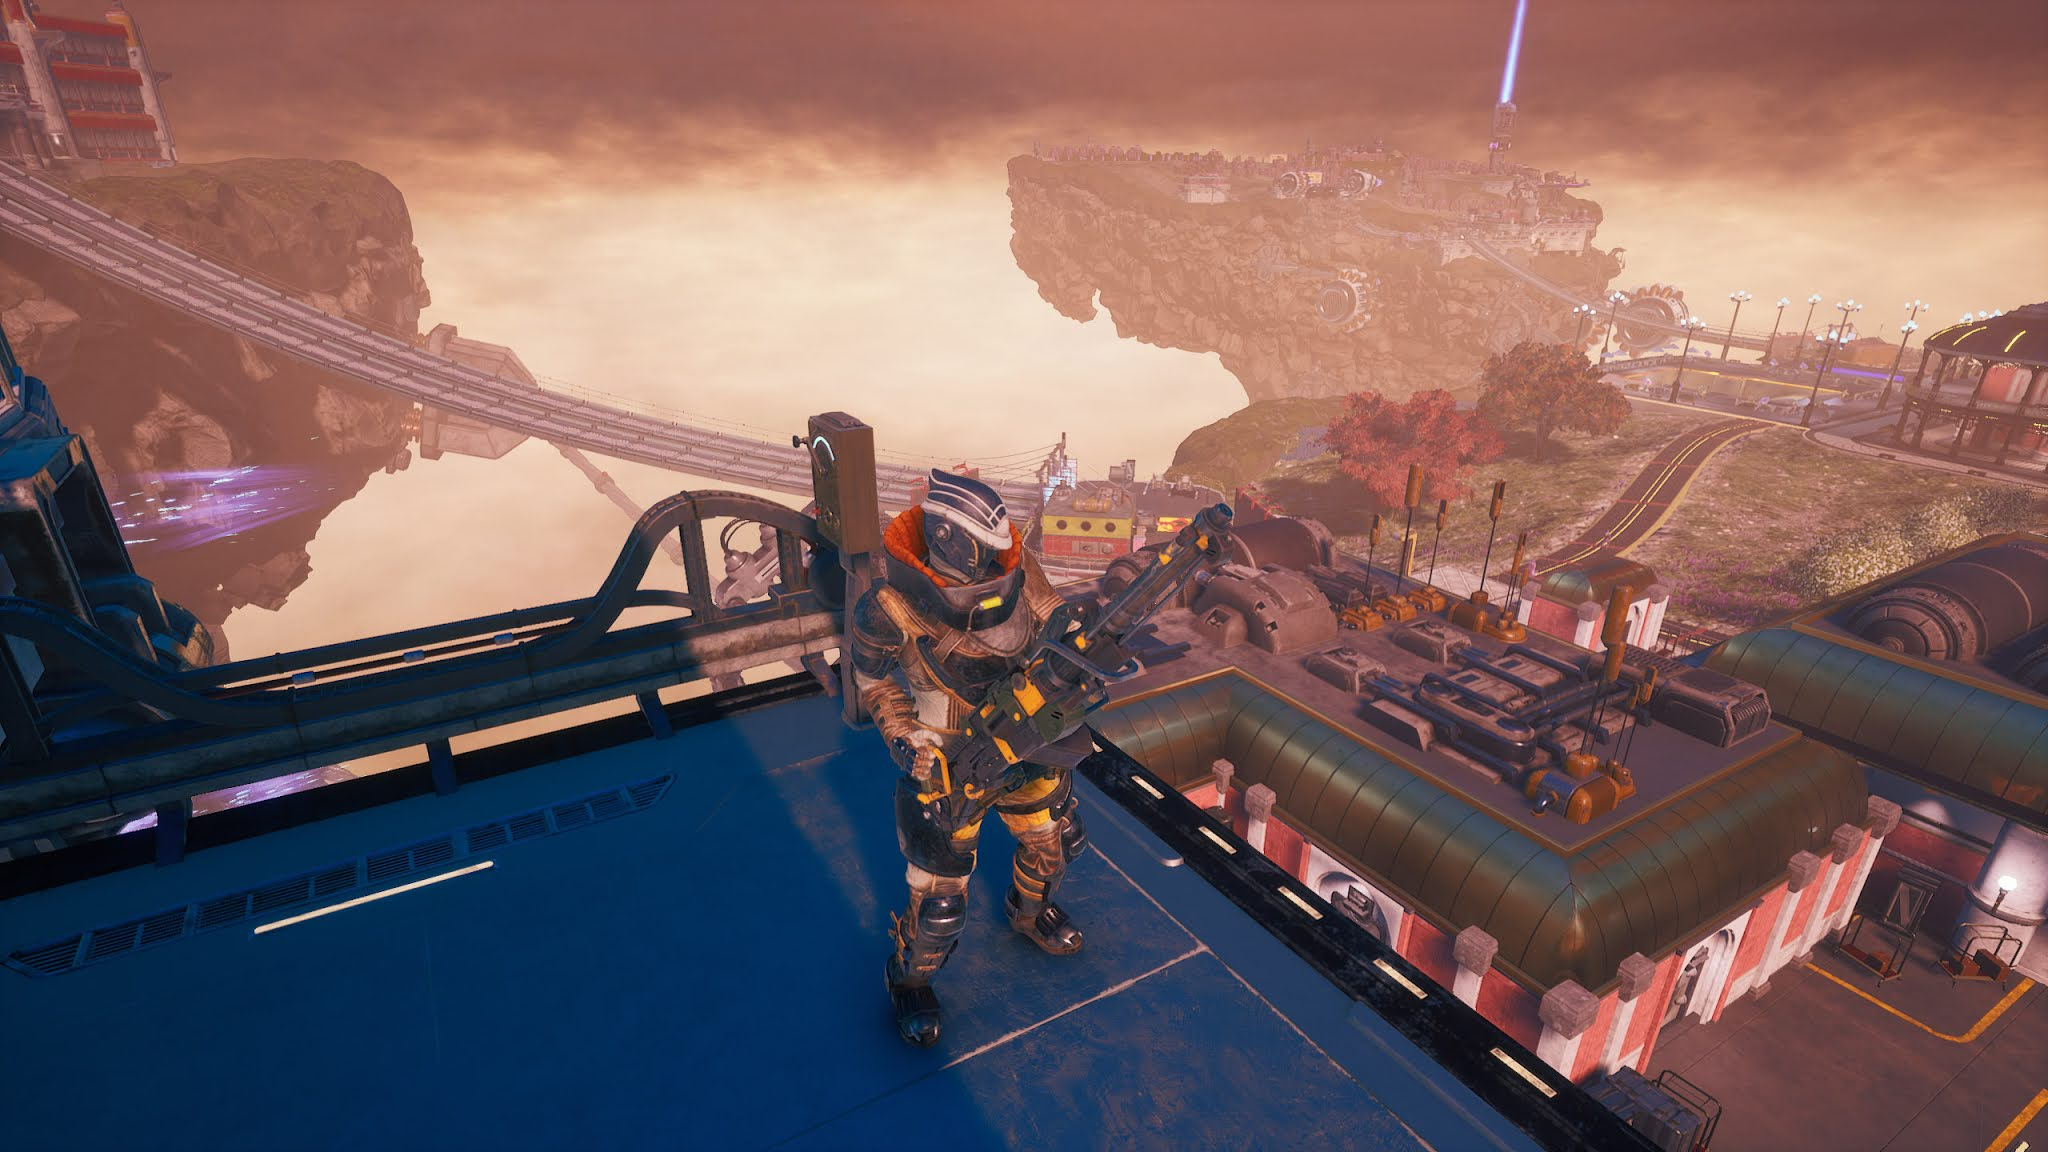 Guide The Outer Worlds: Murder on Eridanos